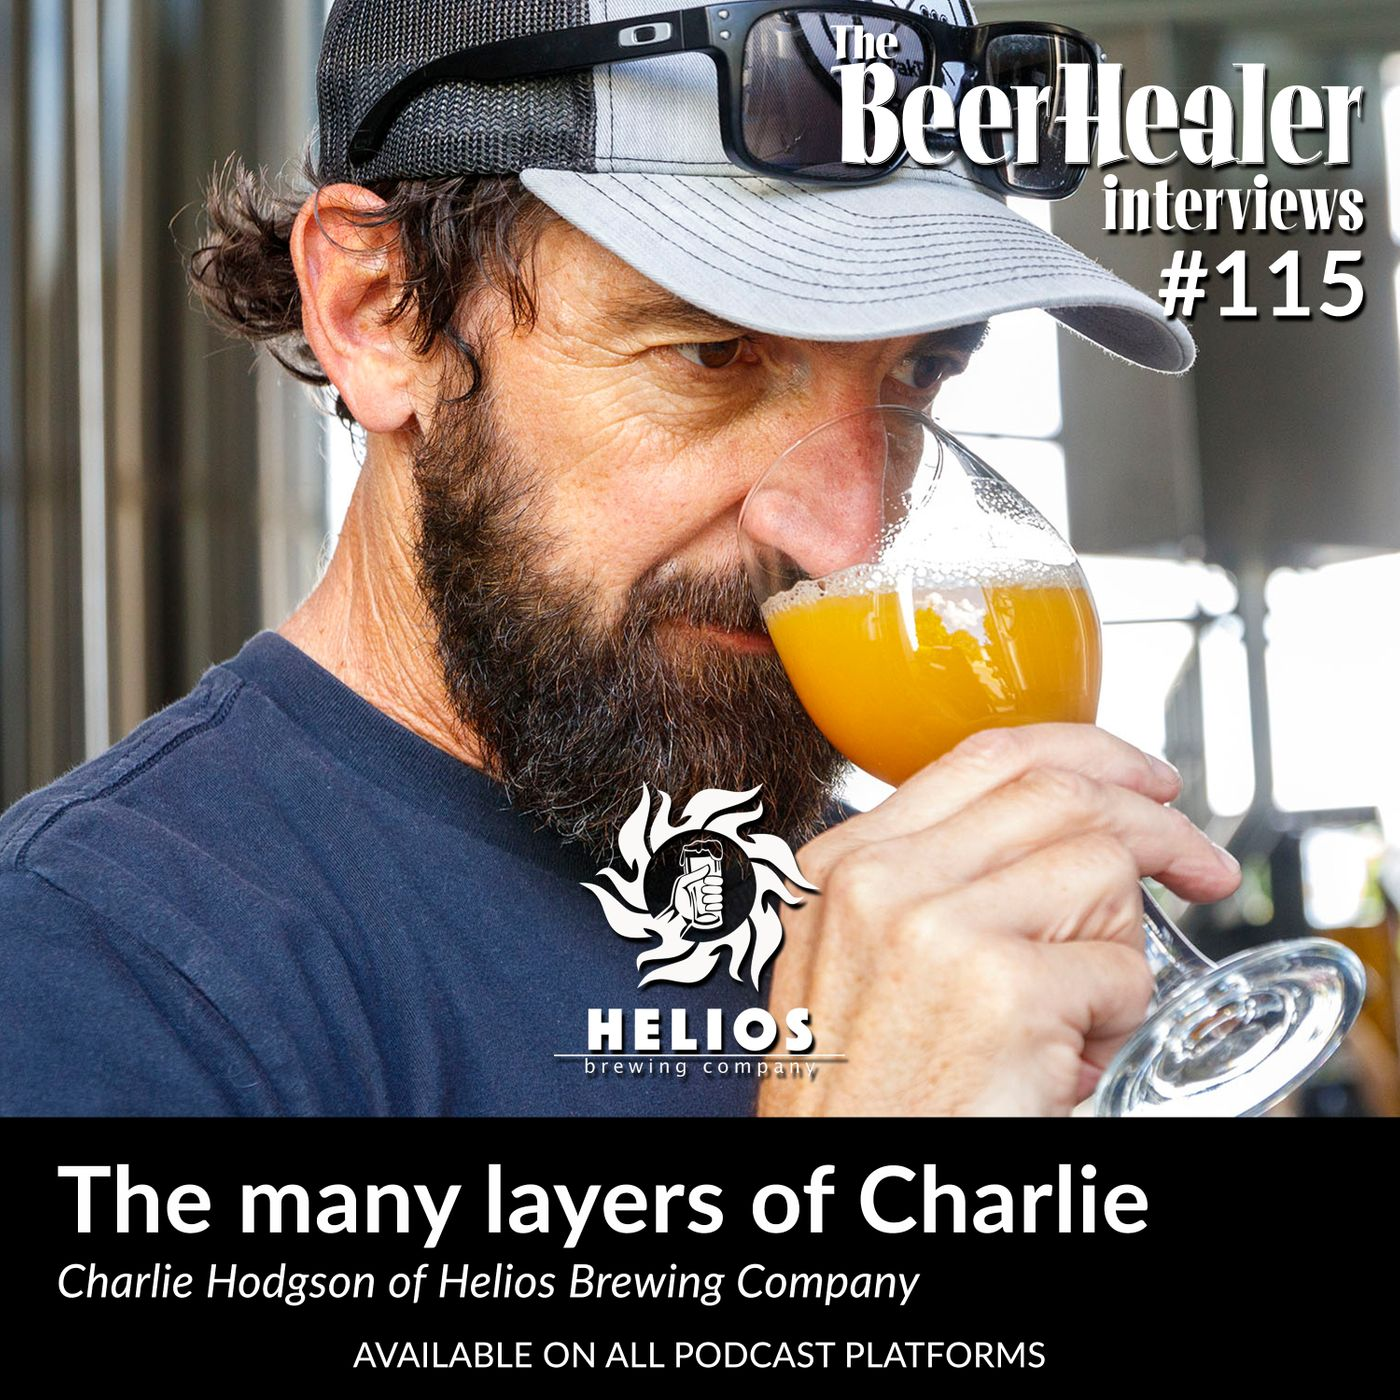 Ep. 115 - The many layers of Charlie. With Charlie Hodgson of Helios Brewing Company.